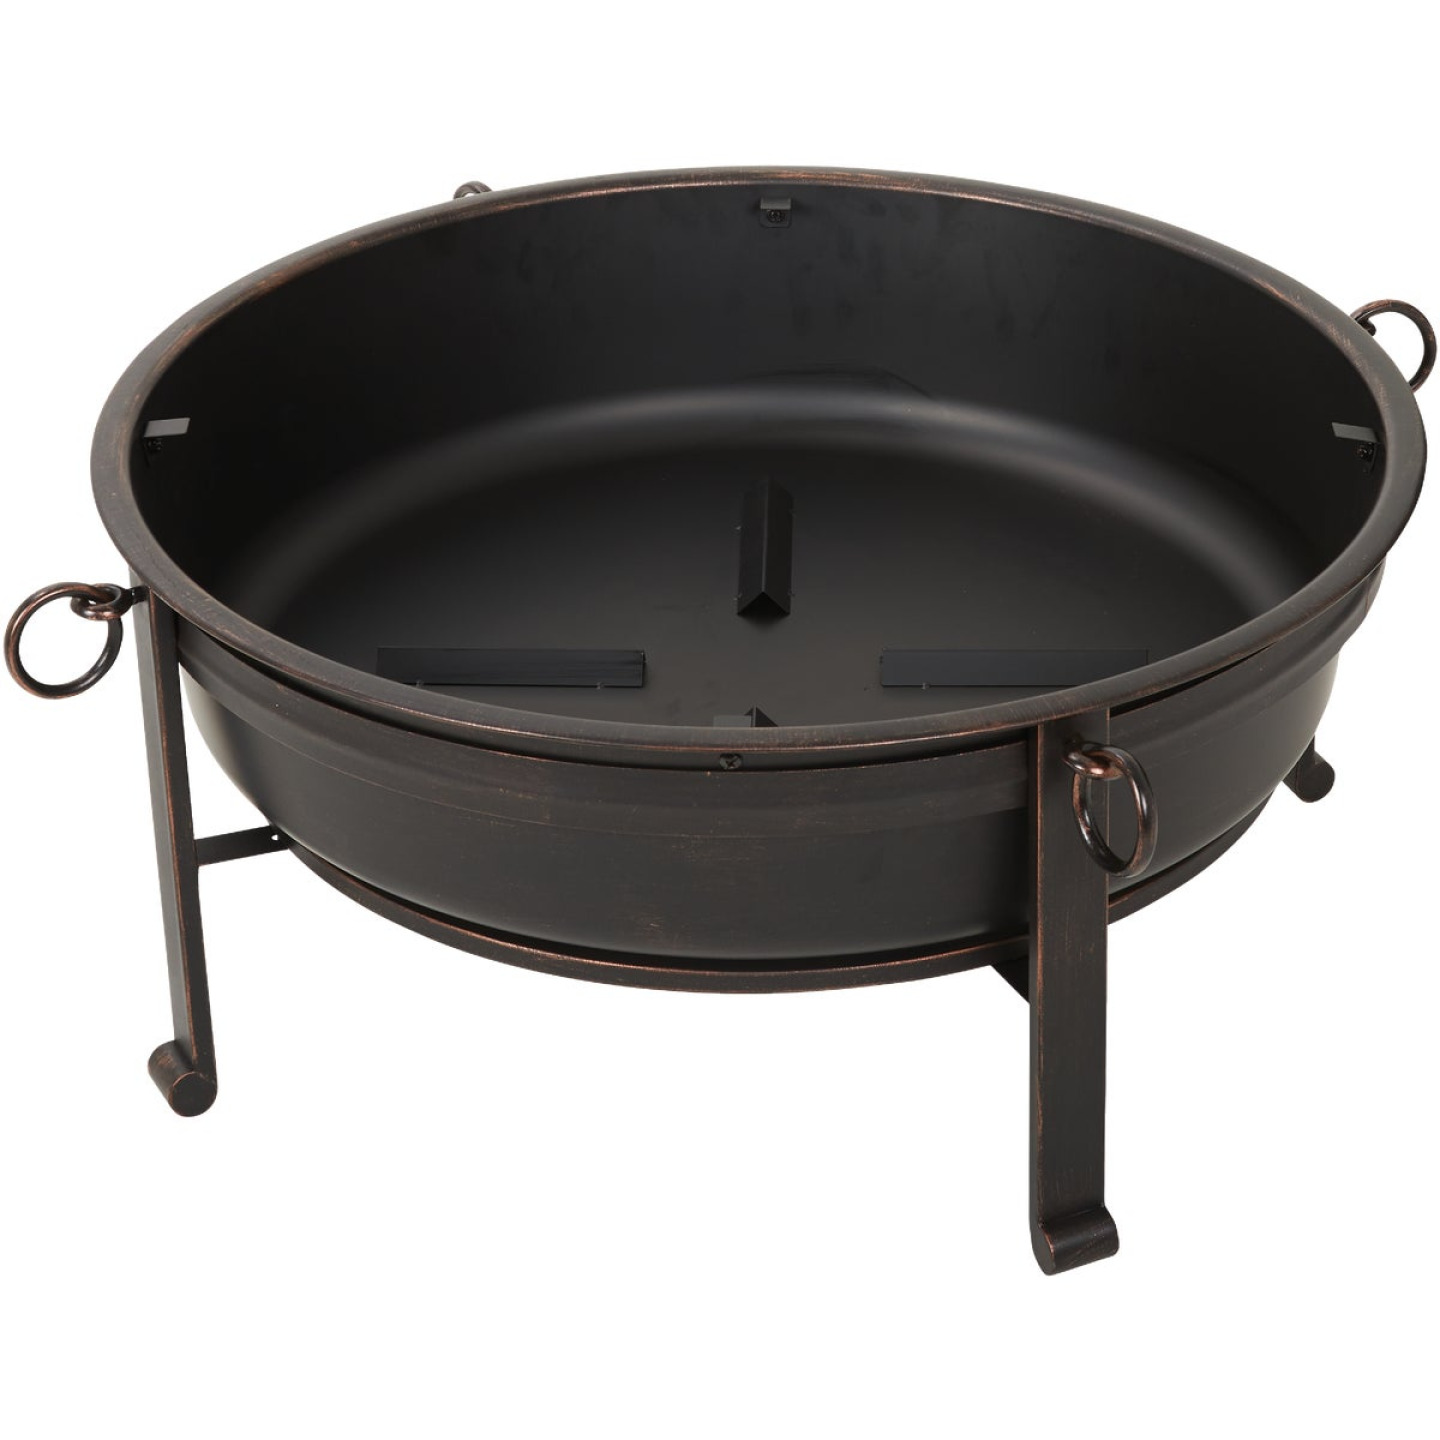 Outdoor Expressions 30 In. Antique Bronze Deep Bowl Steel Fire Pit Image 4